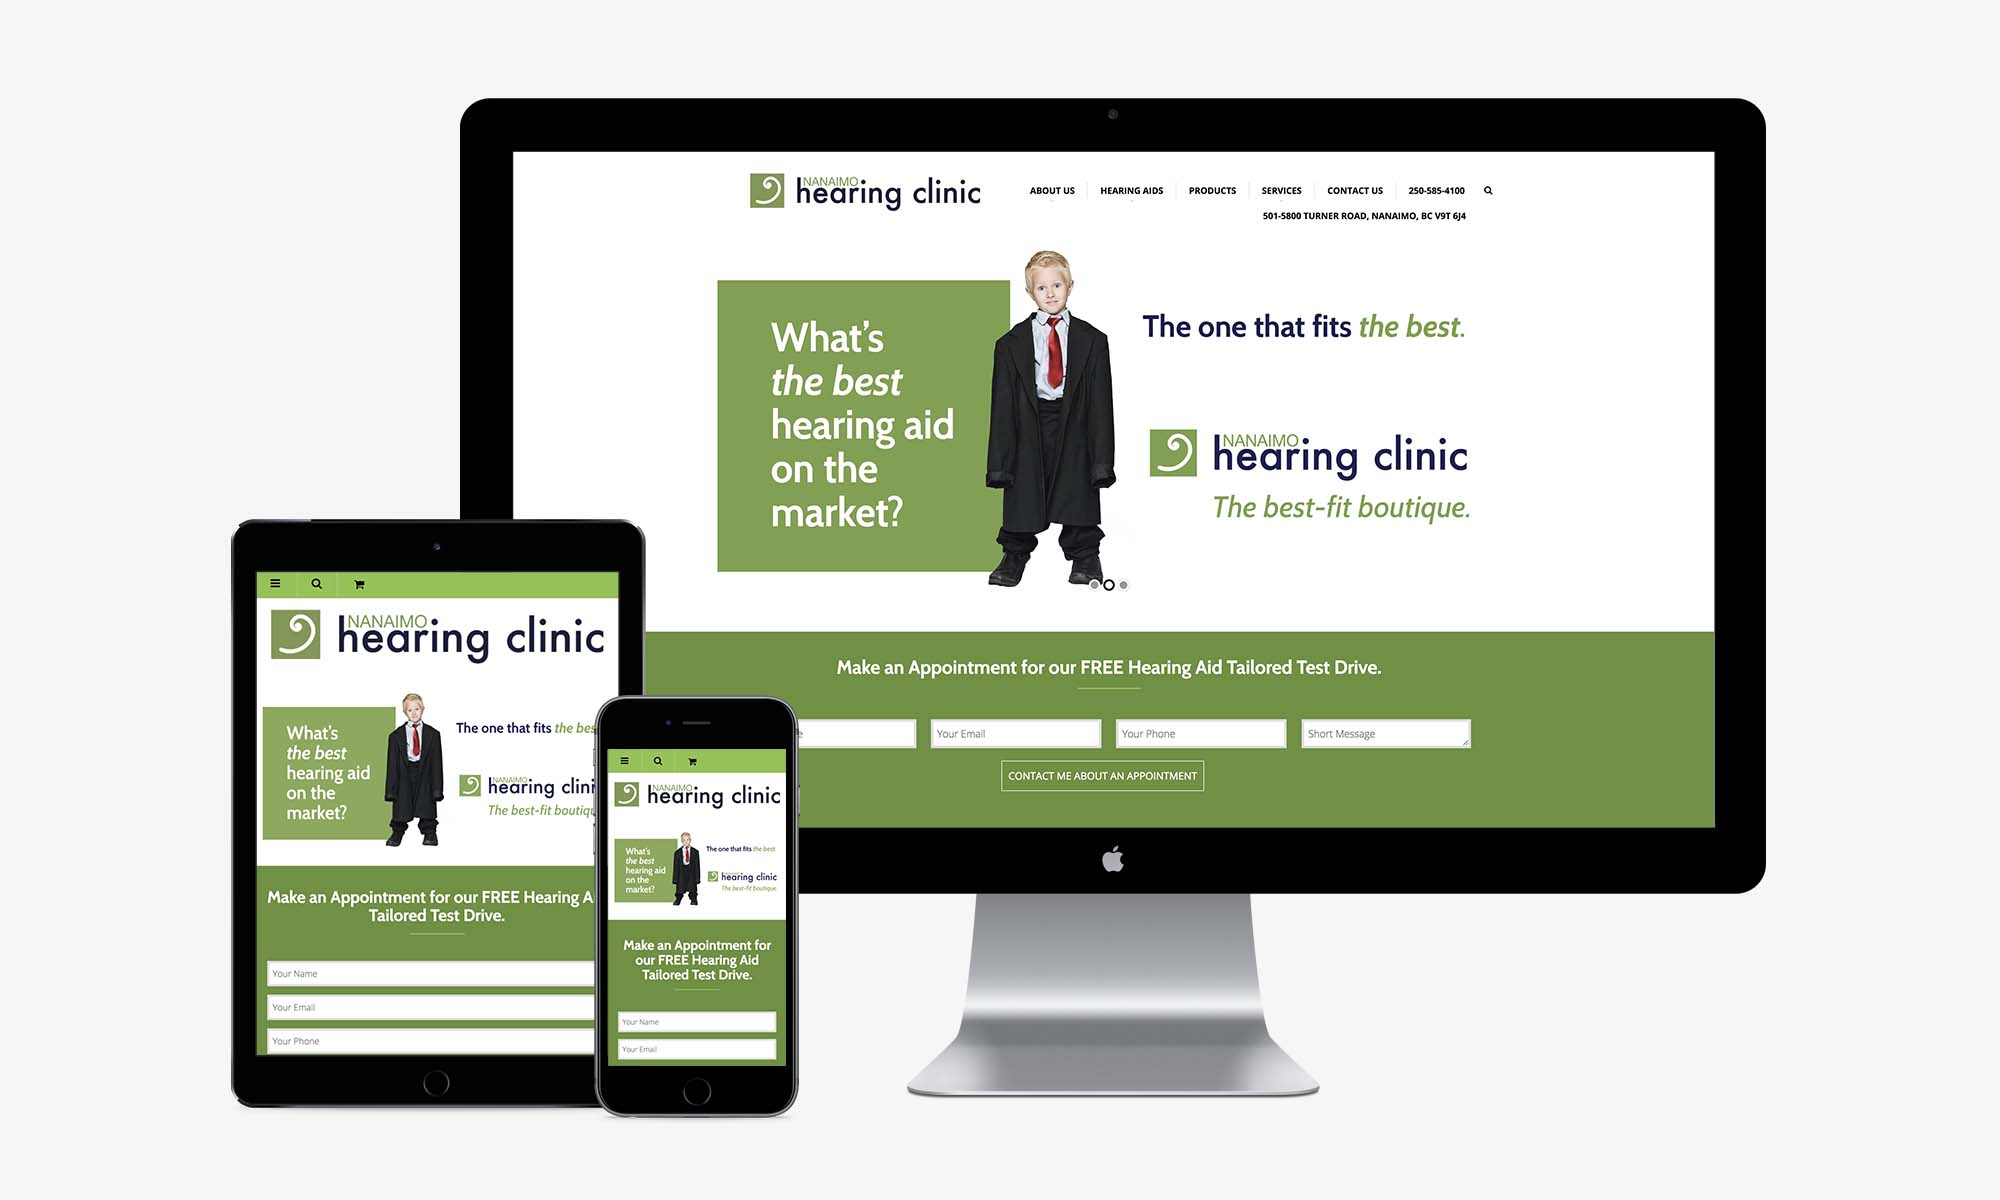 Nanaimo Hearing Clinic responsive web design by Better Mousetrap Marketing